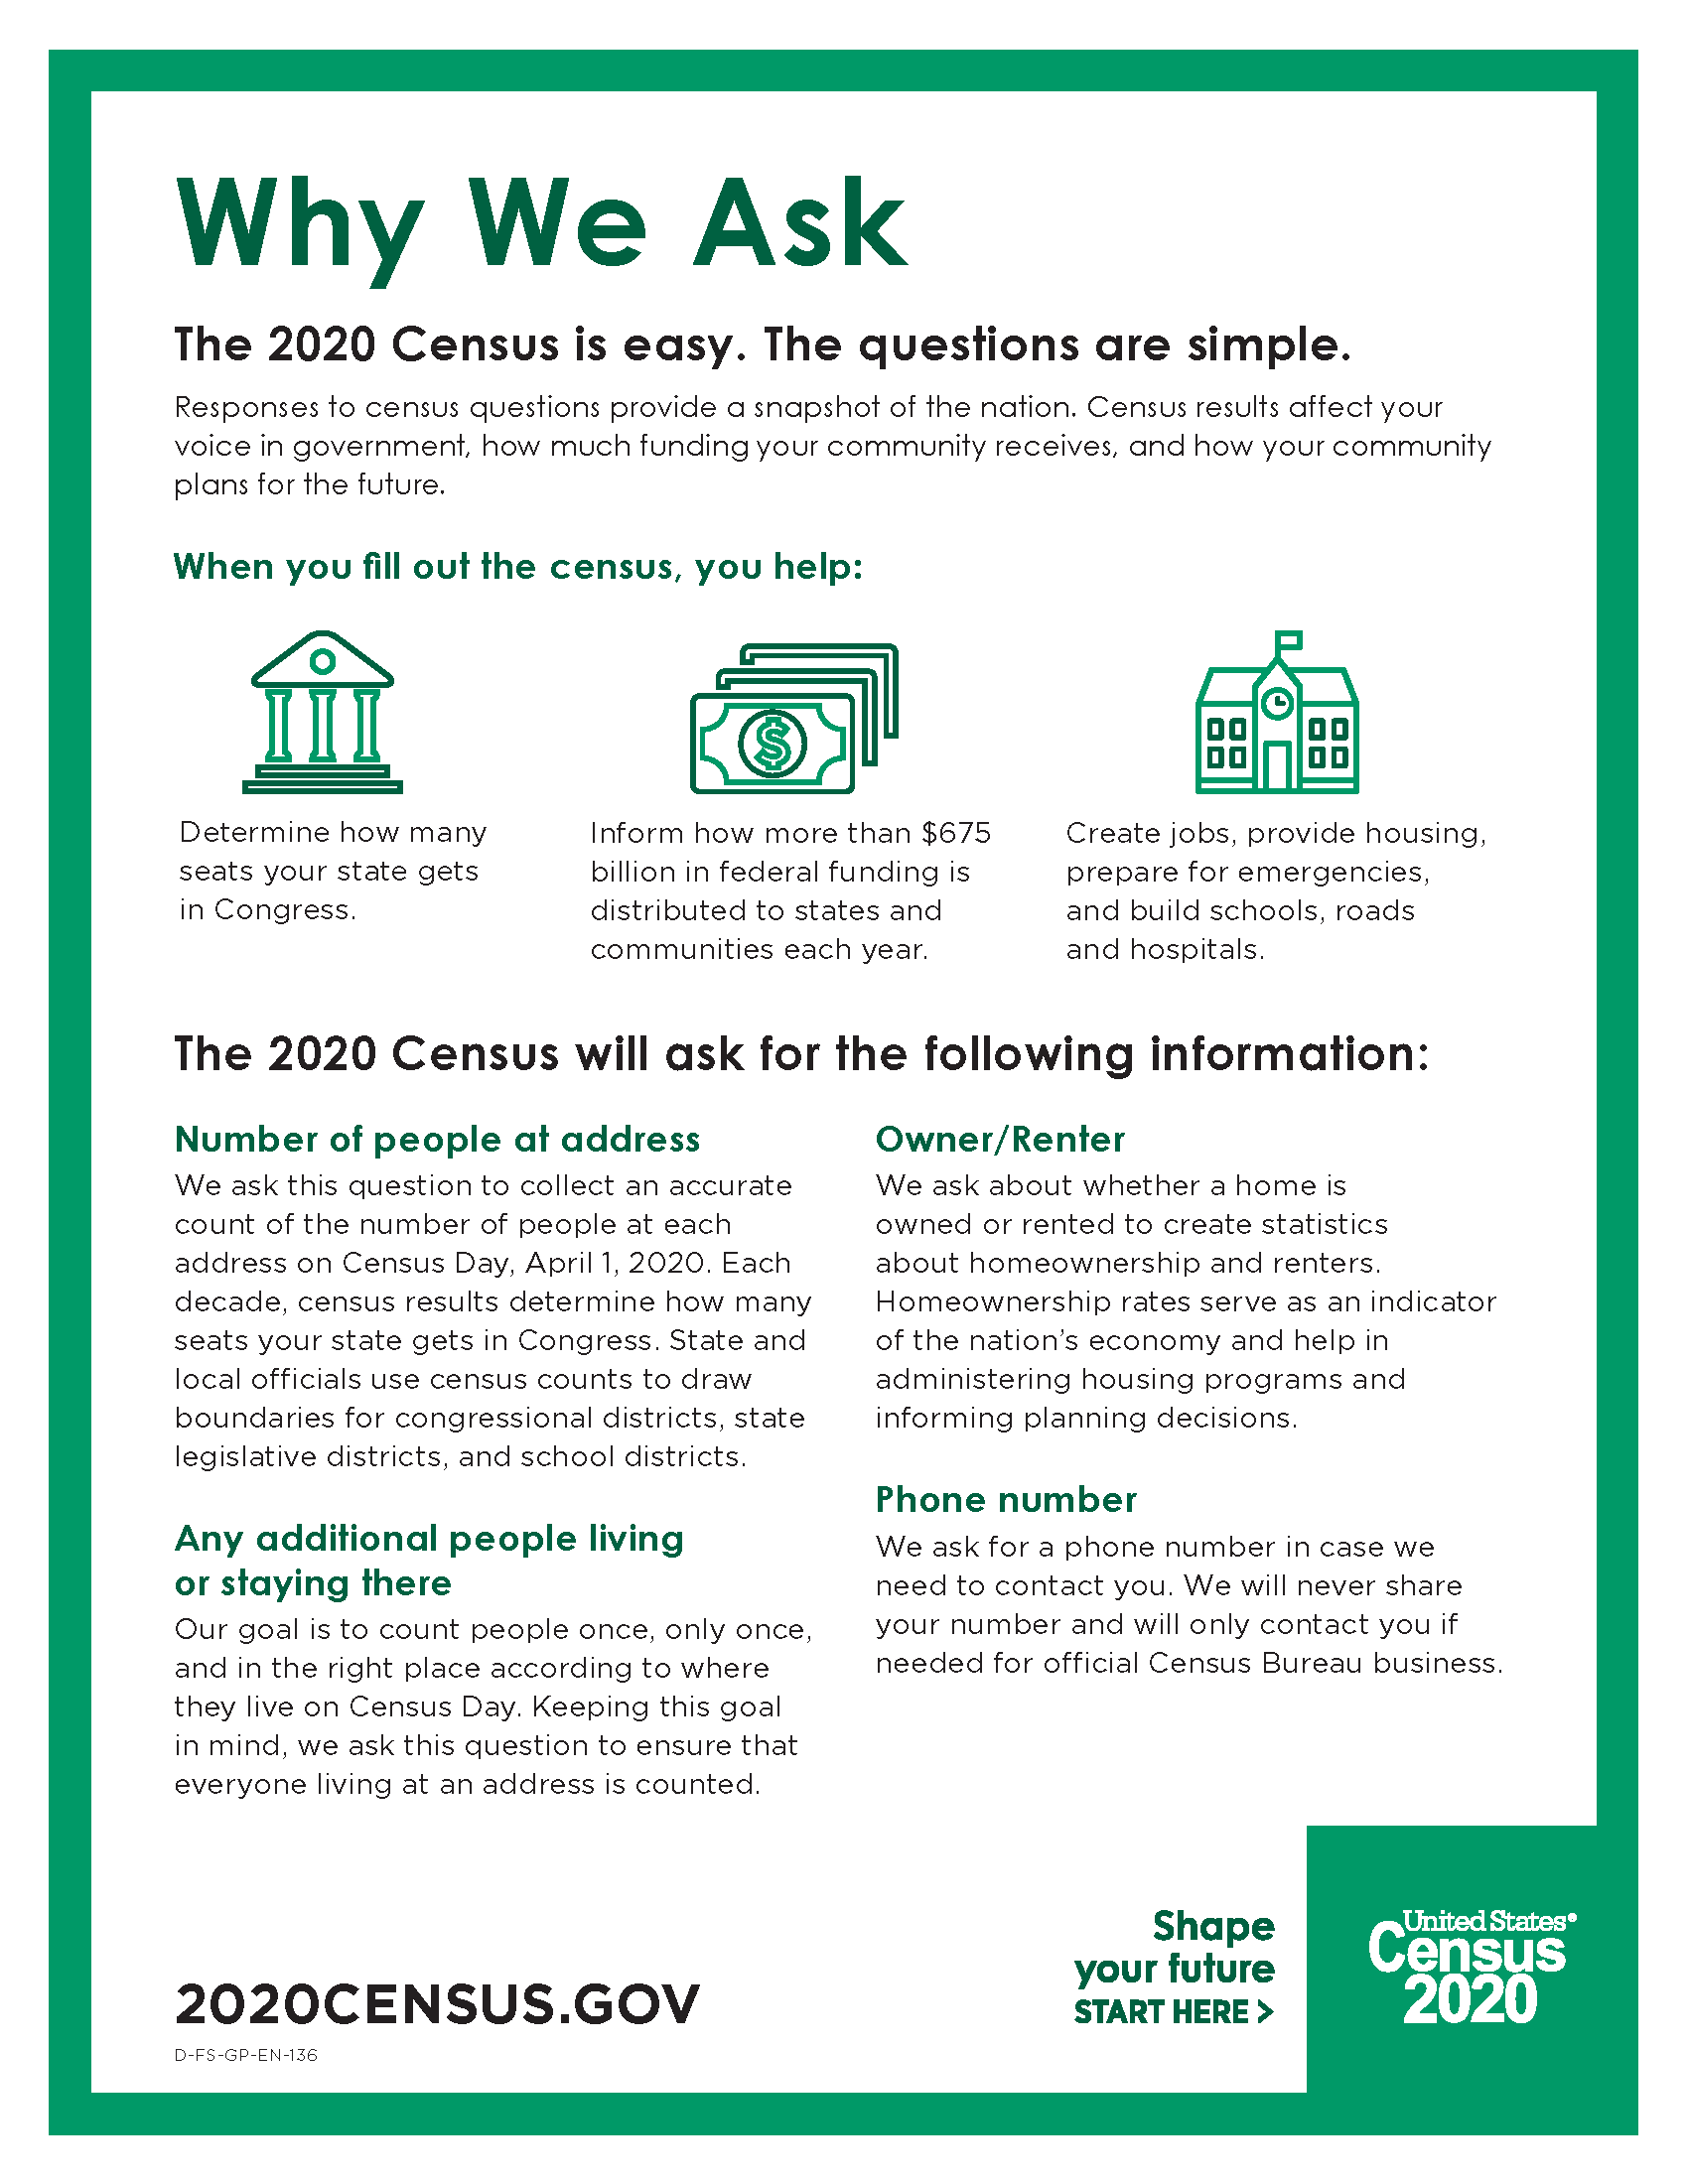 Handout_About_Why_We_Ask_Each_2020Census_Question_Page_1.png